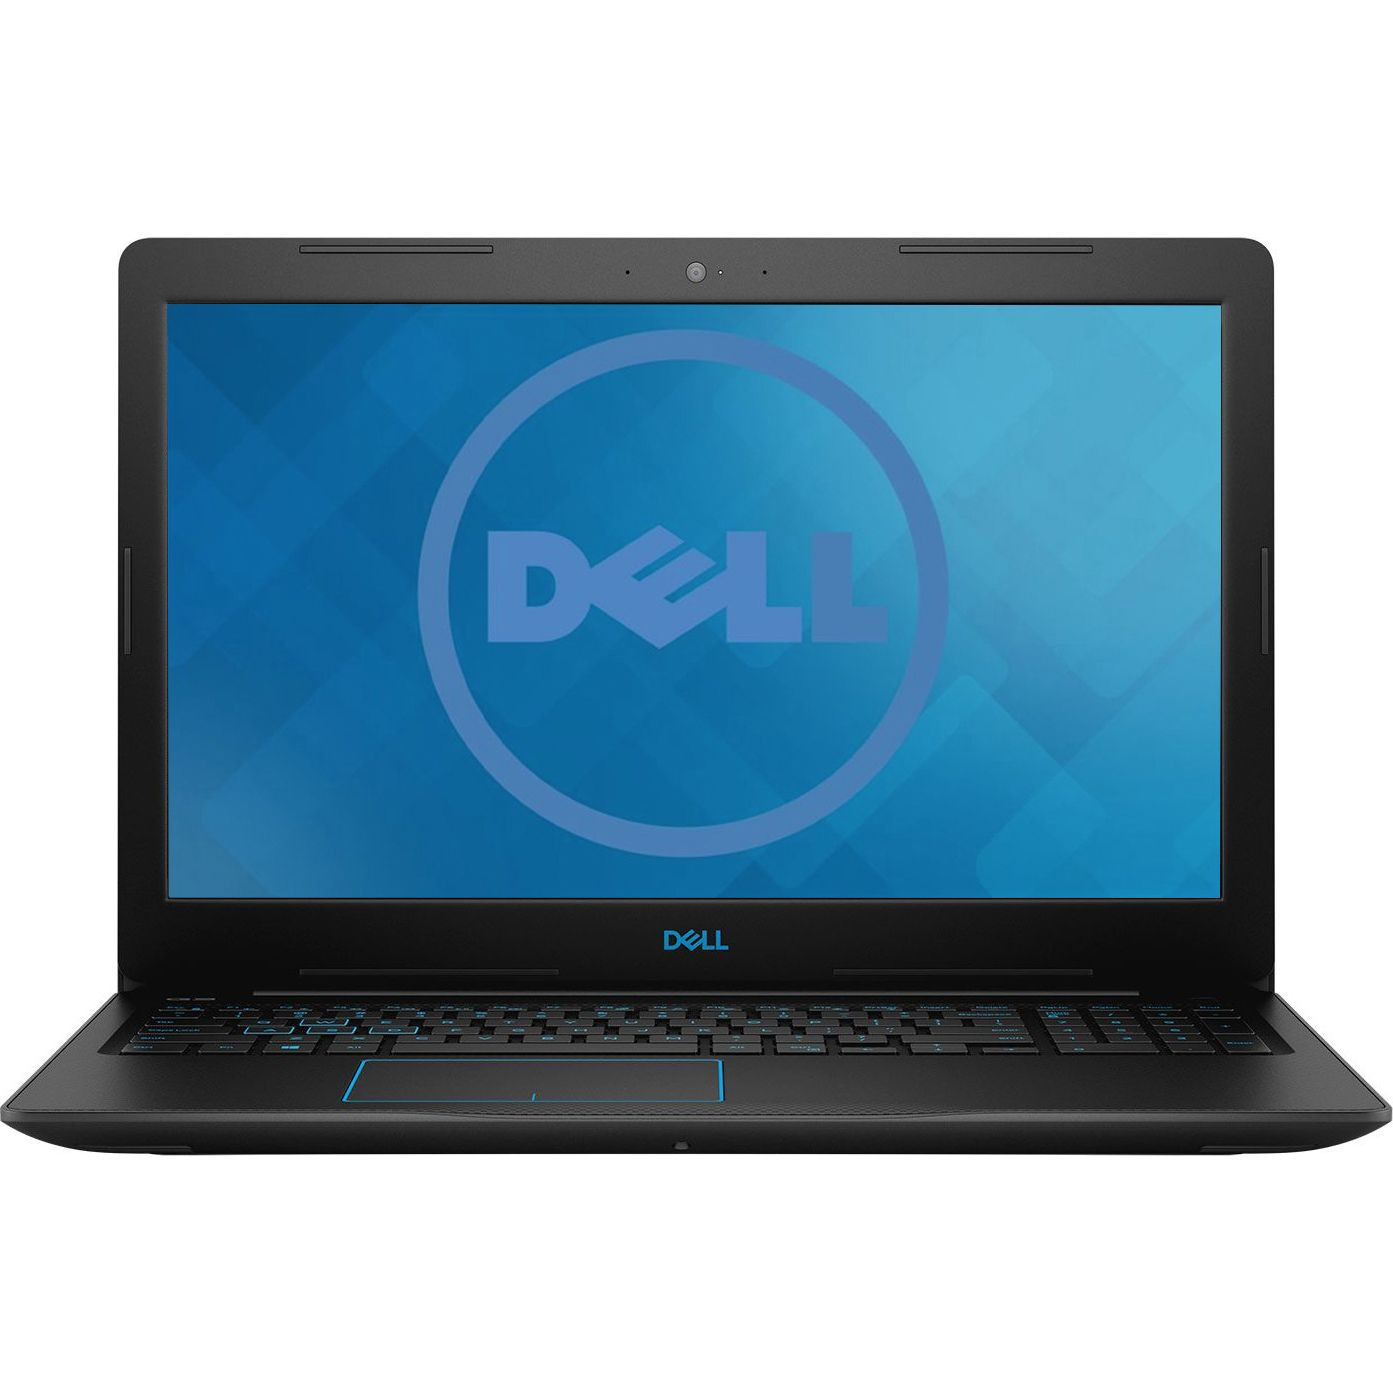 Notebook Dell G3 3579 15.6 Full HD Intel Core i5-8300H GTX 1050-4GB RAM 8GB SSD 256GB Windows 10 Home